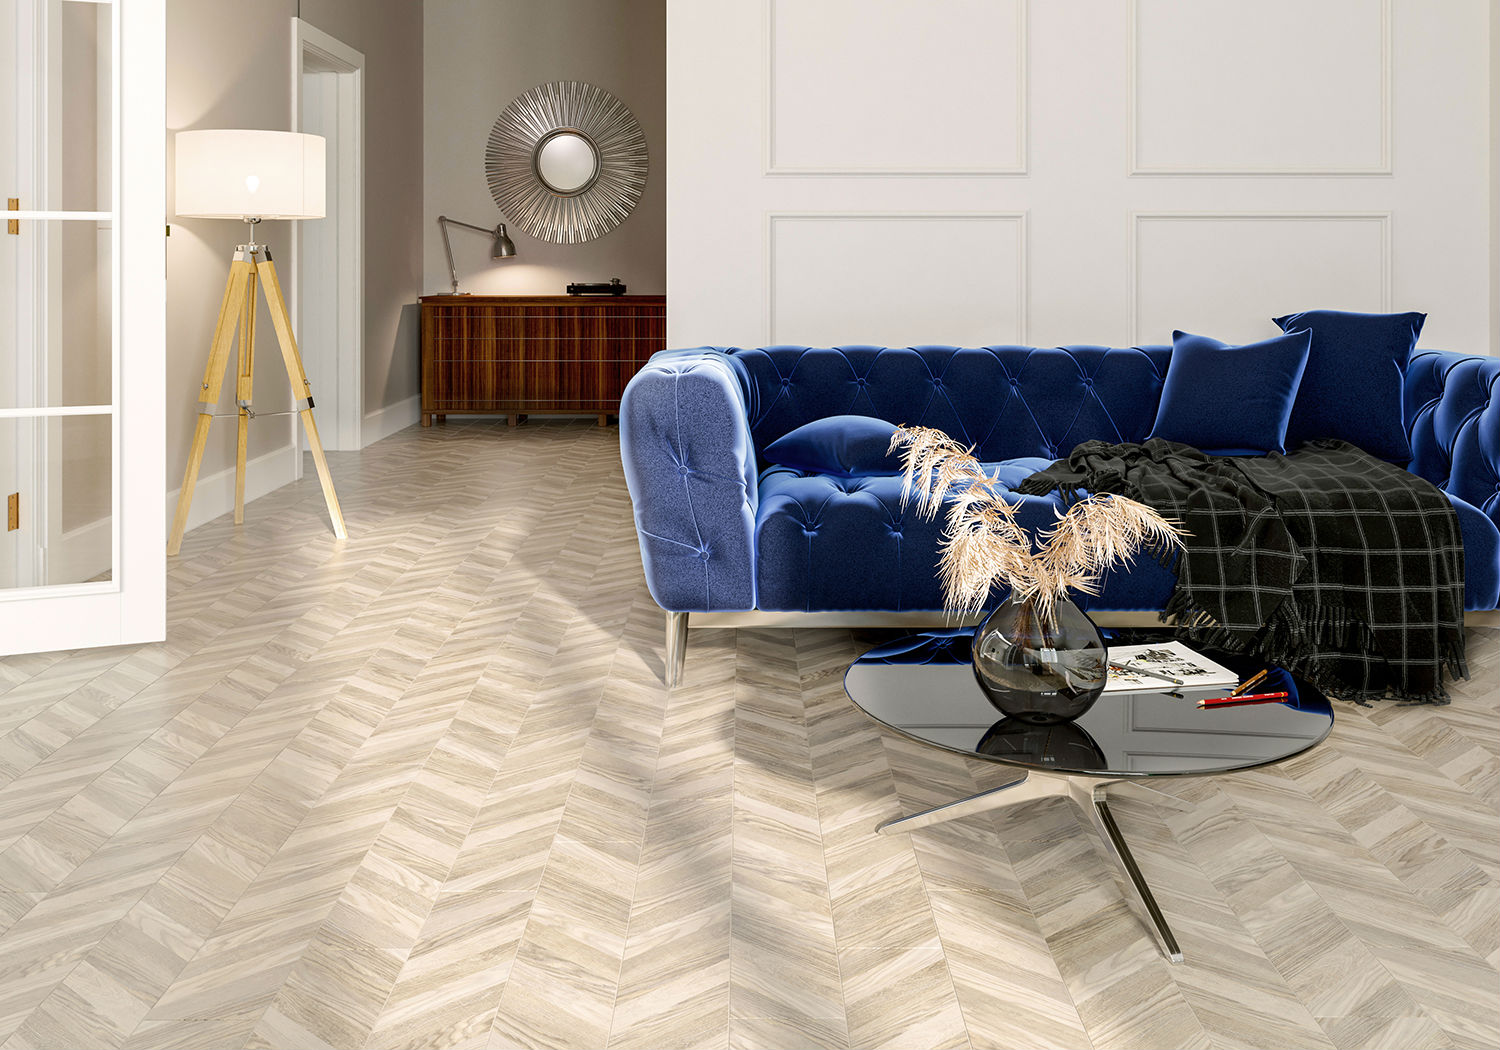 Golden Tile Wood Chevron